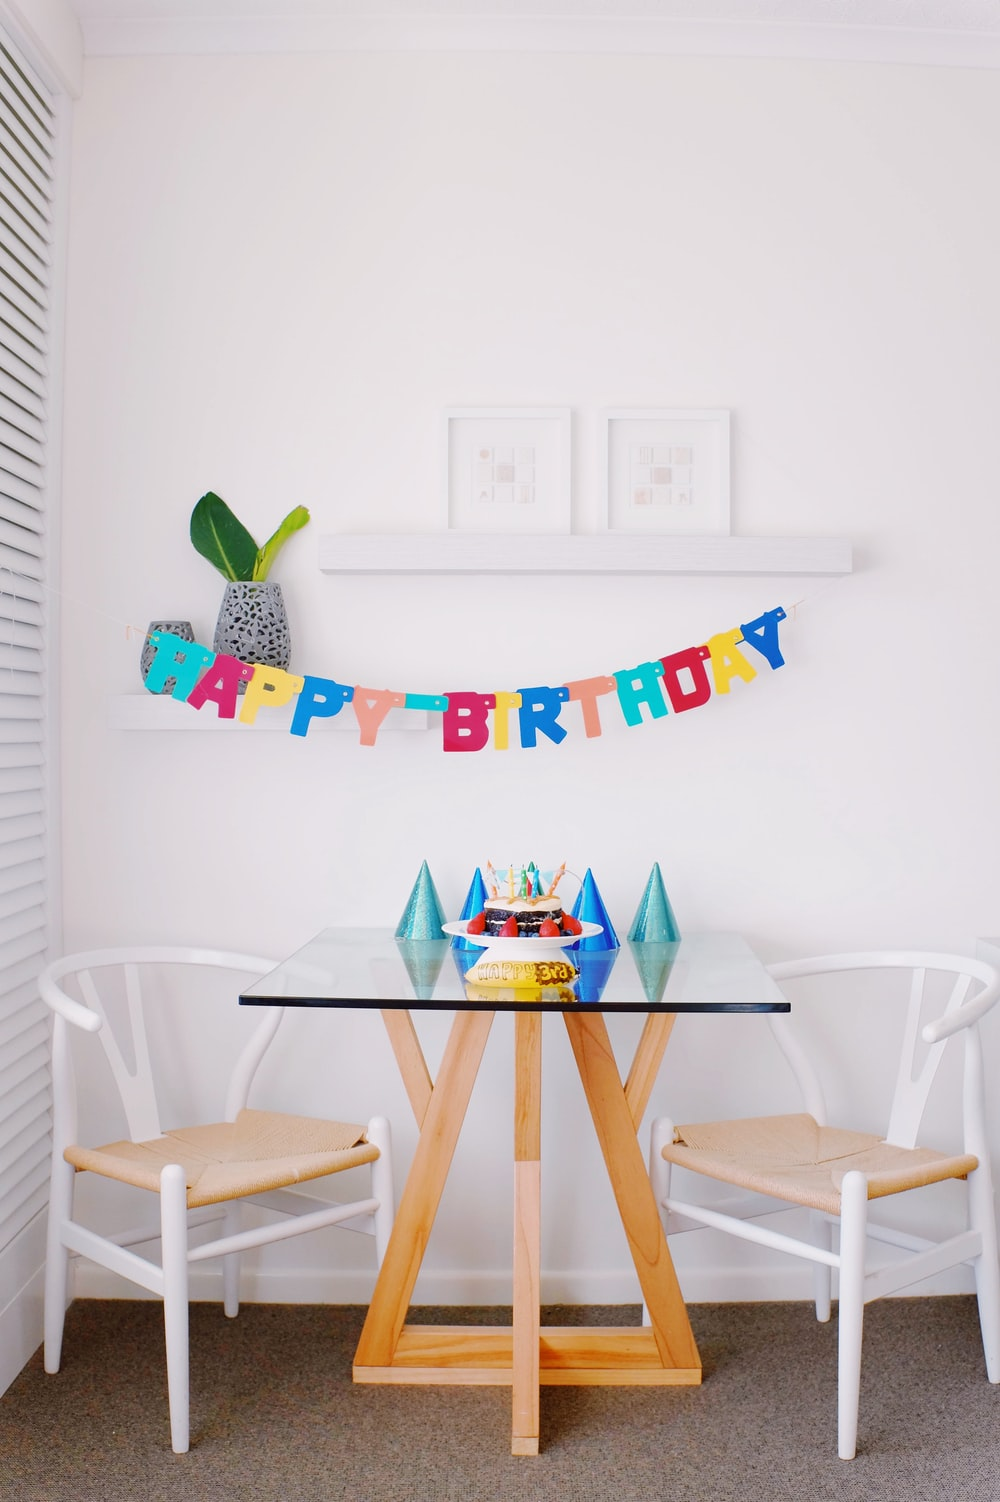 brown and white pub set and happy birthday hanging decor inside room